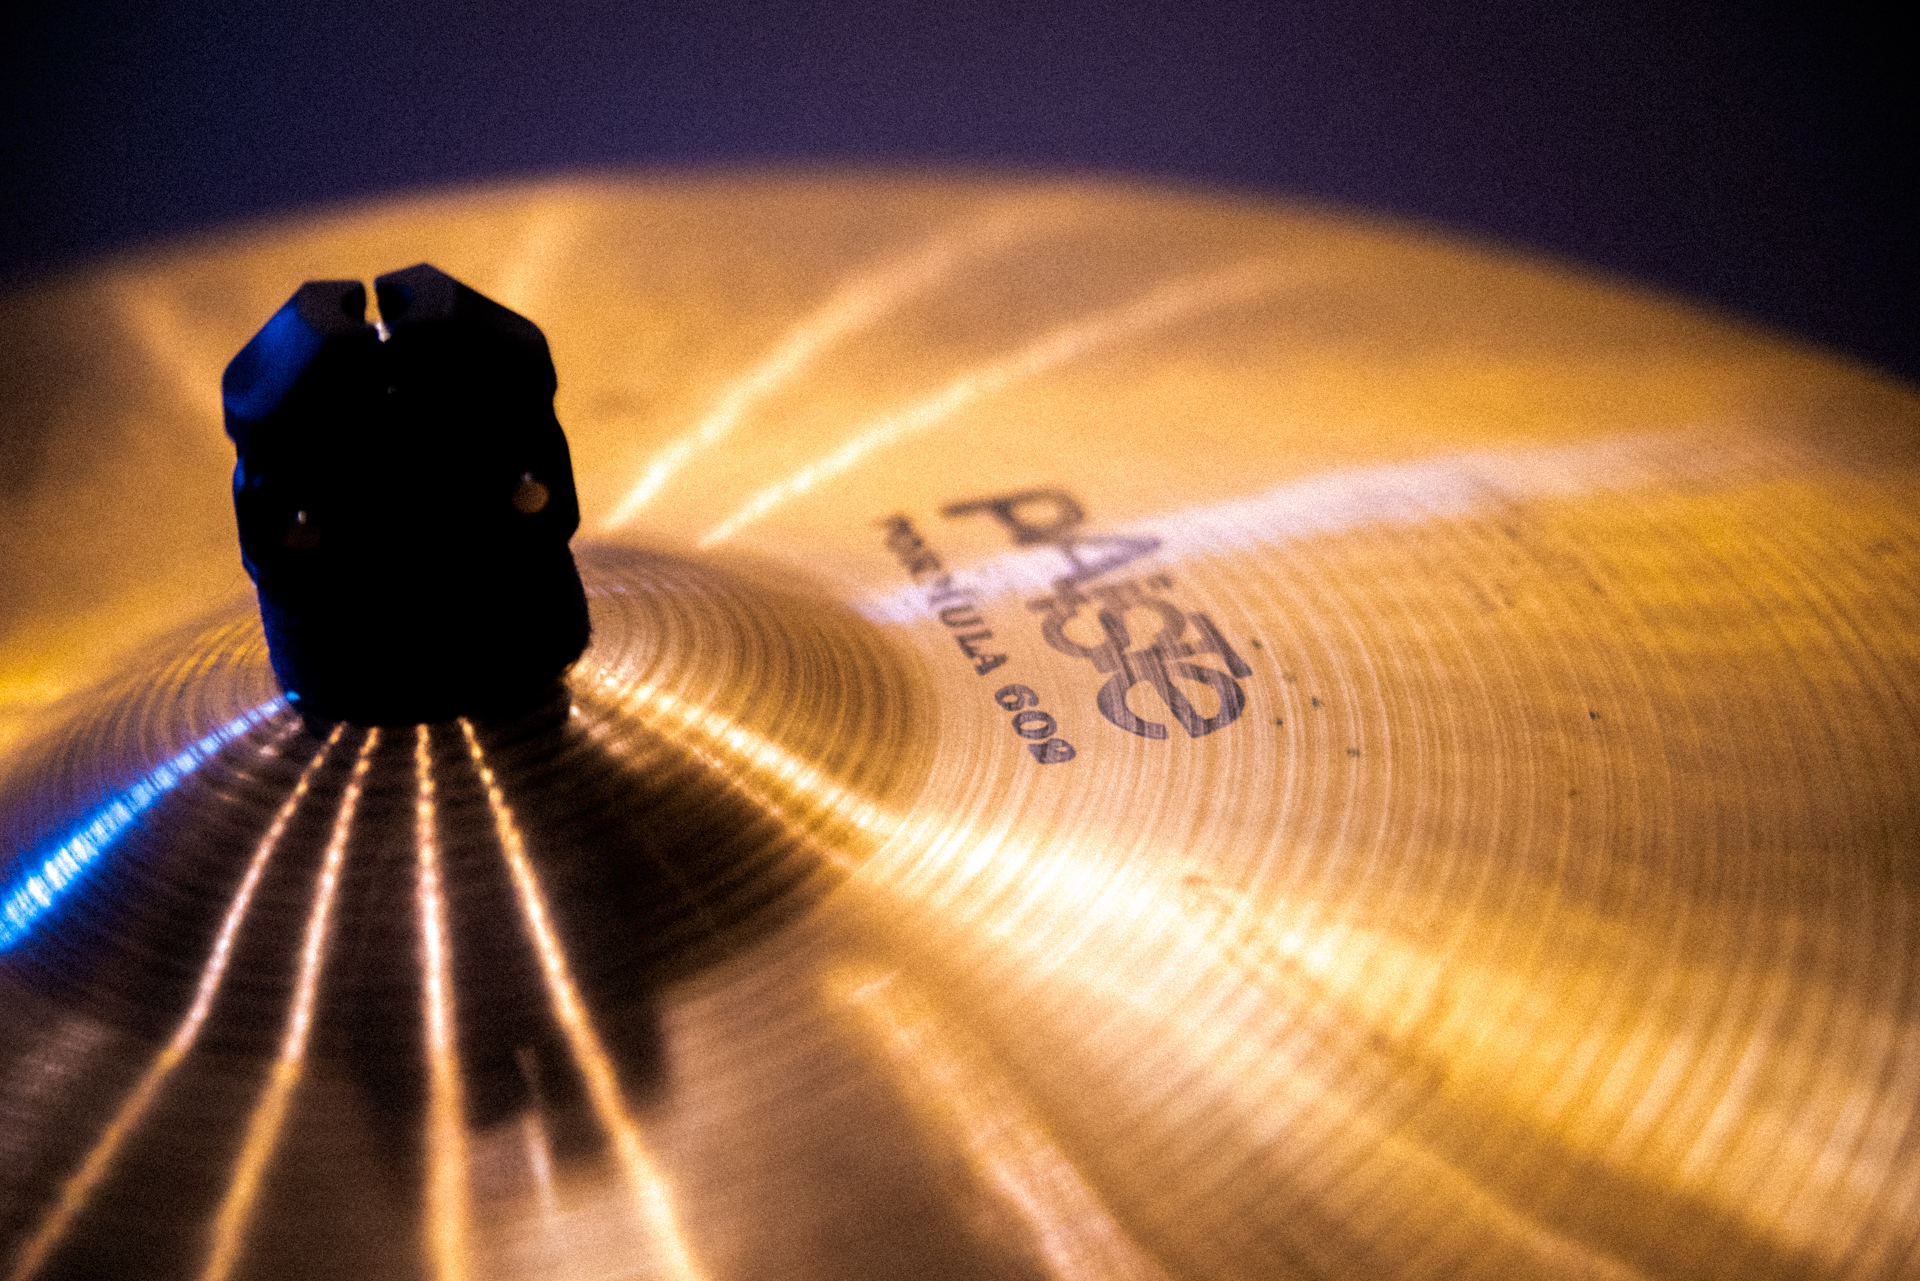 Paiste Crash Cymbal